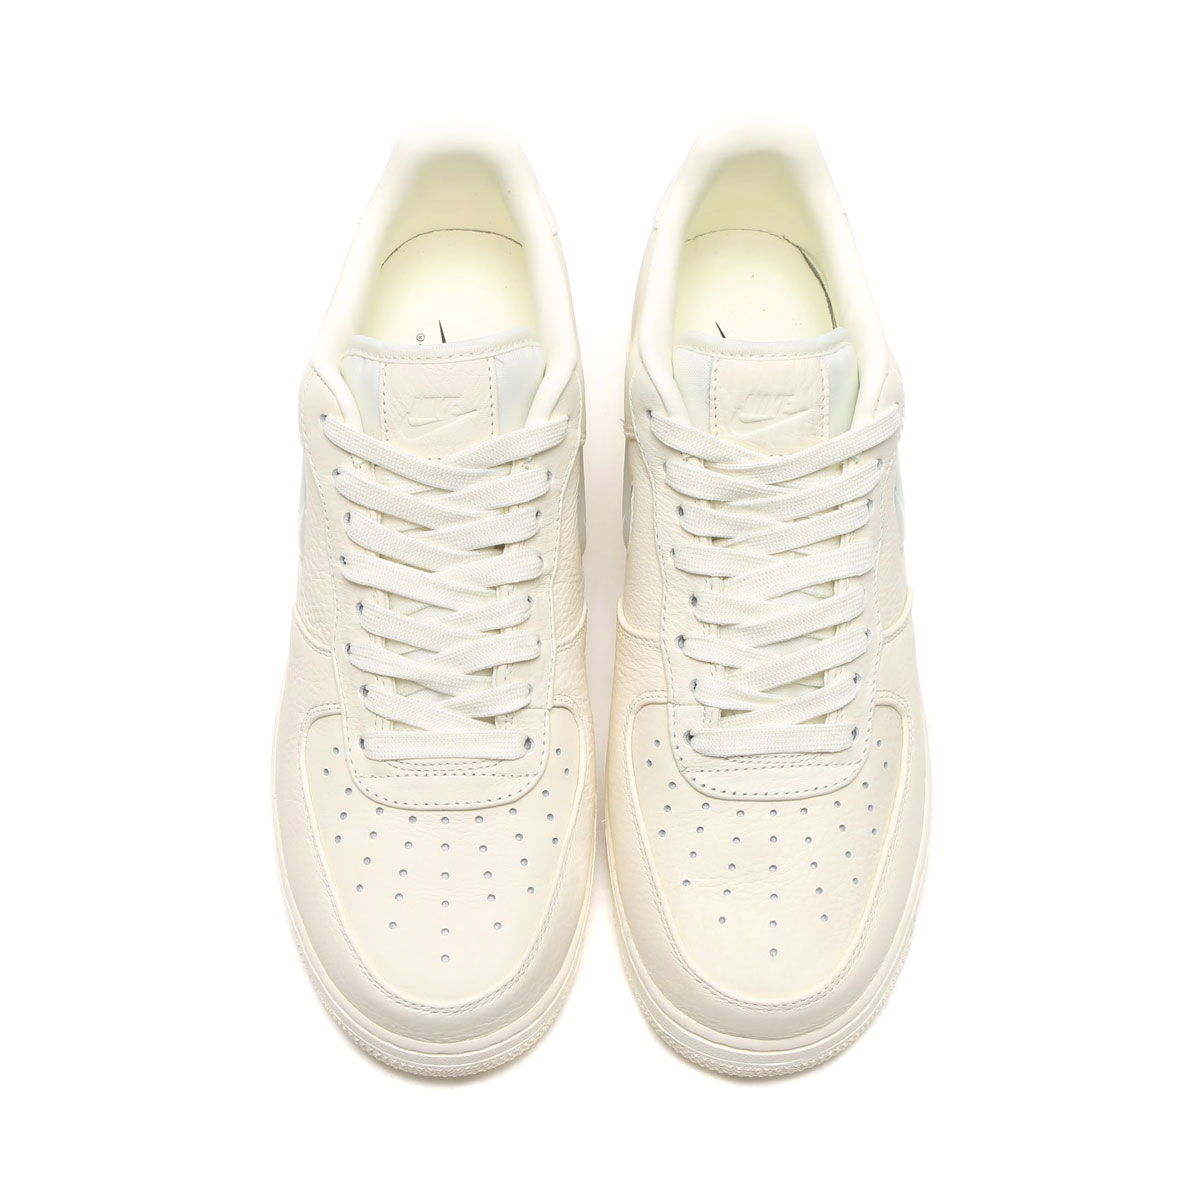 NIKE AIR FORCE 1 RETRO PRM (Nike air force 1 nostalgic premium) (SAIL/SAIL-SAIL) 17SU-I